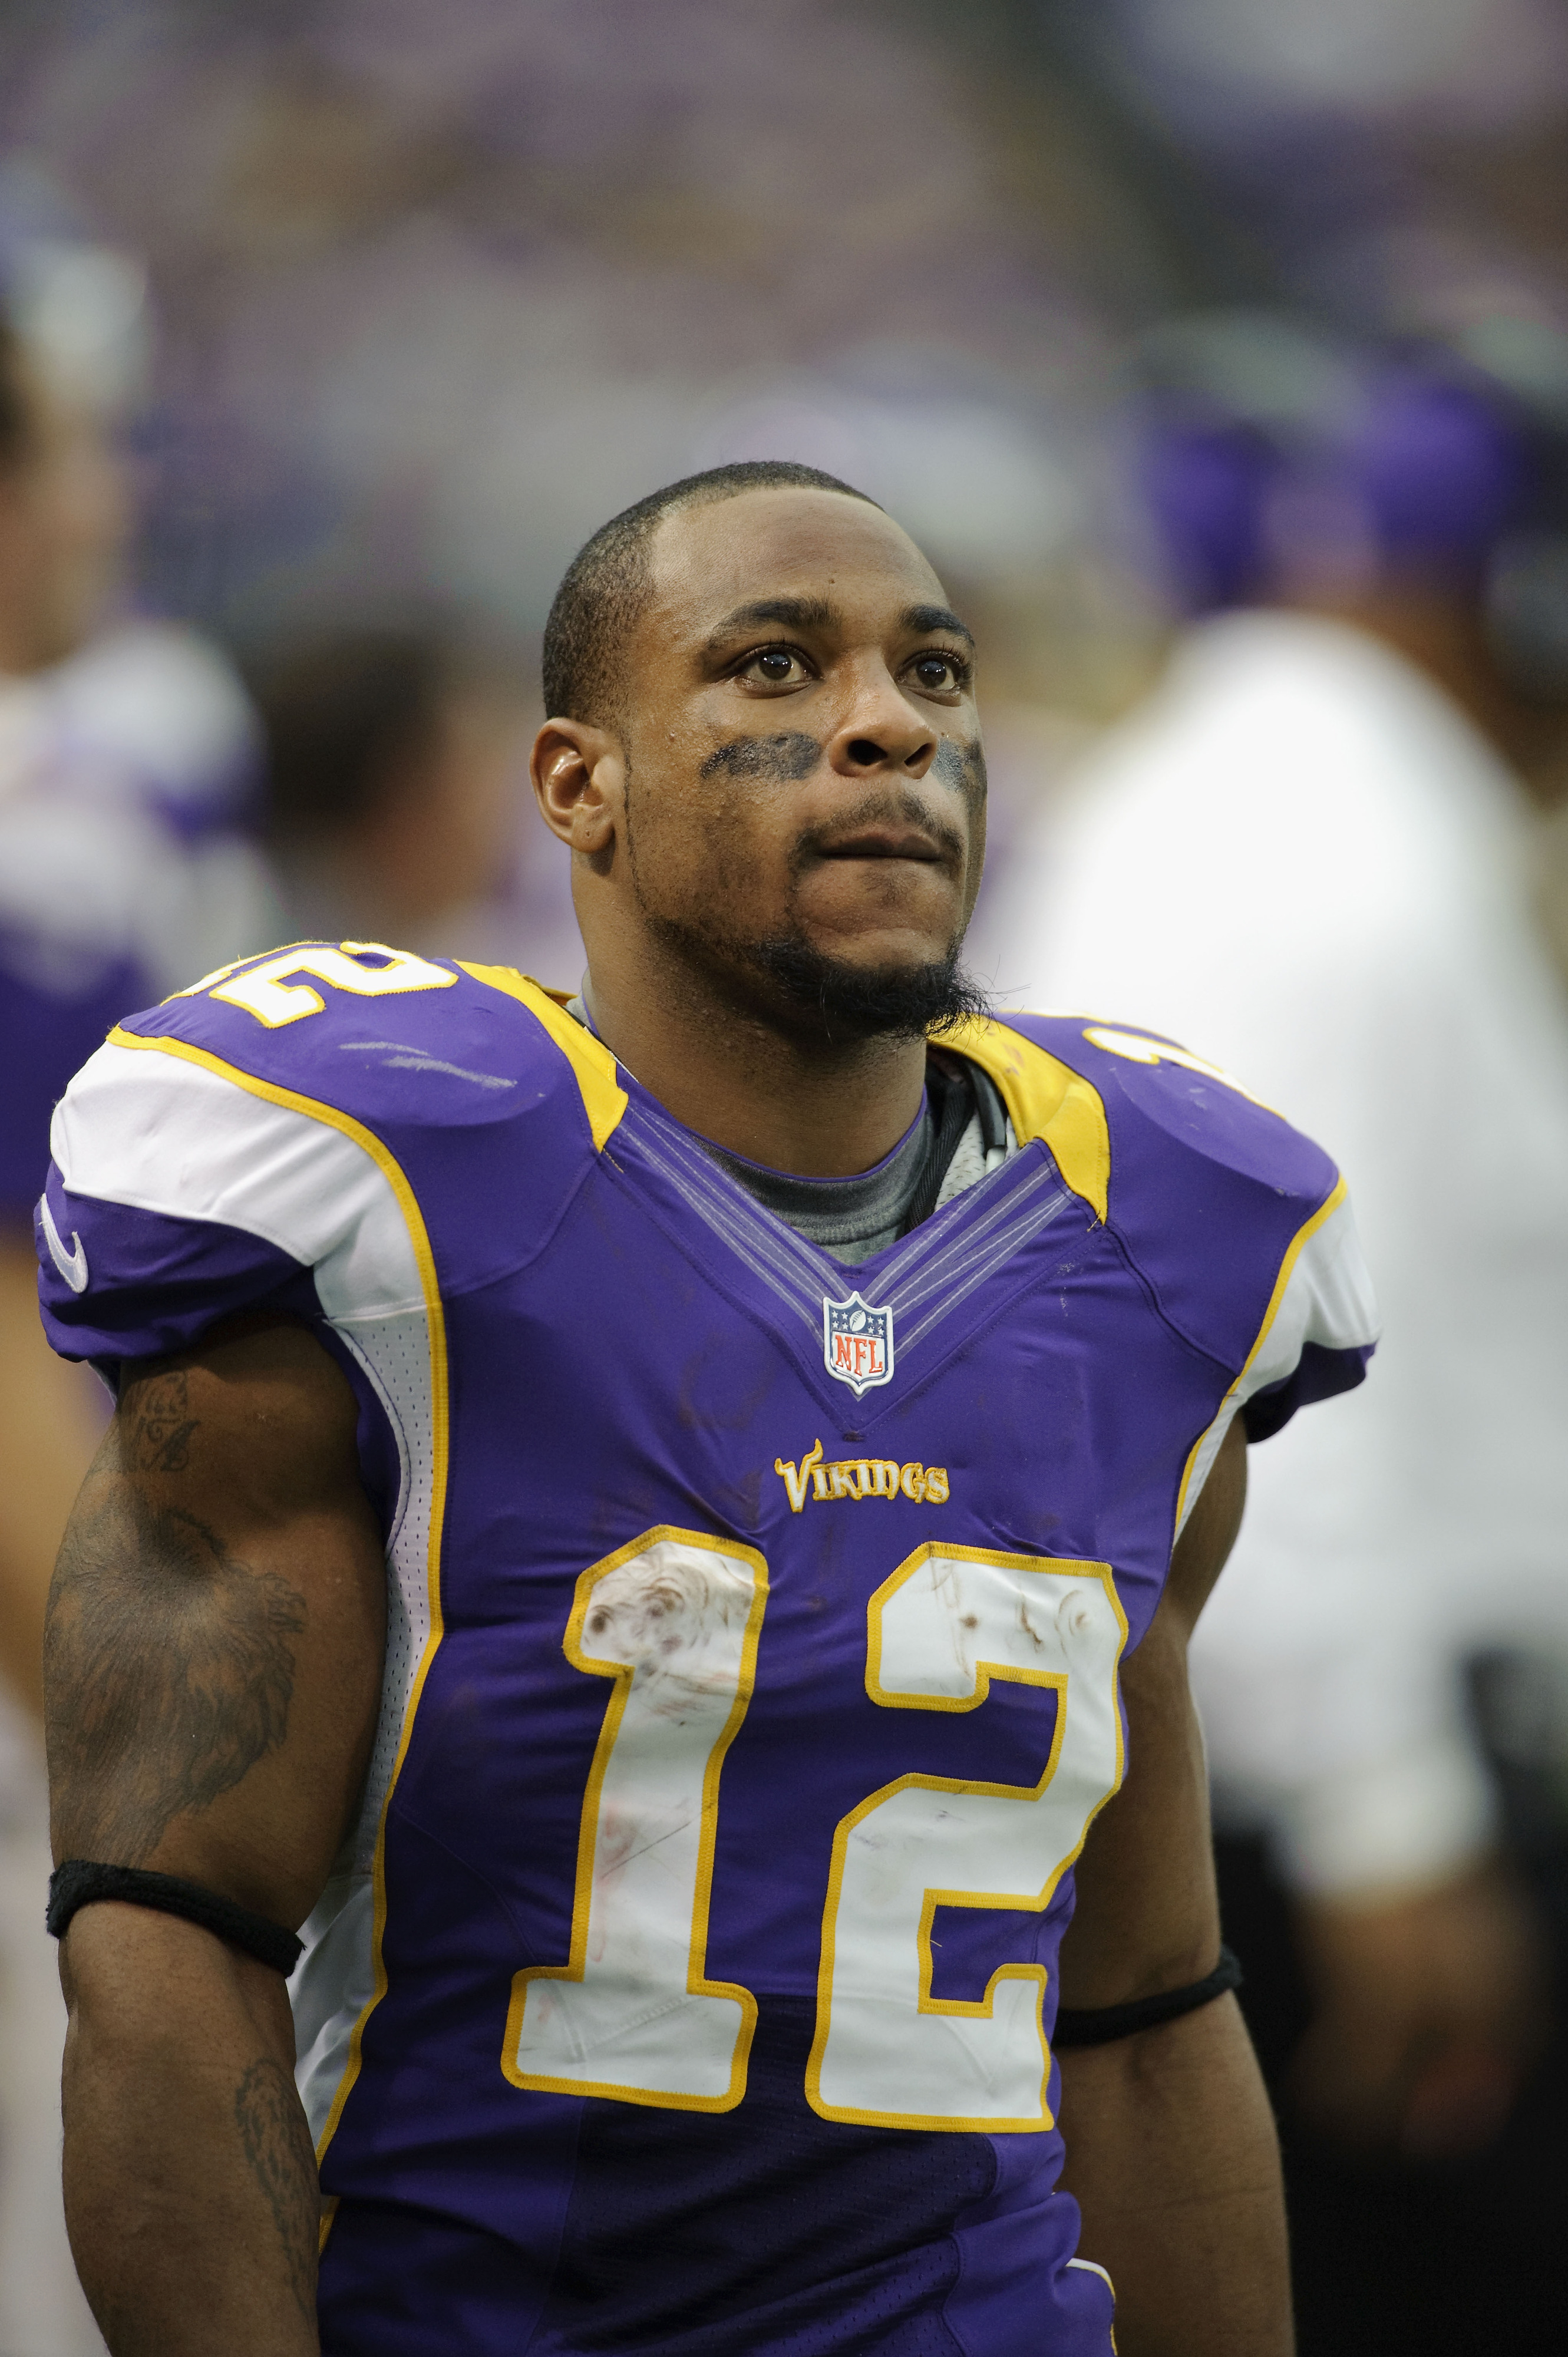 Percy Harvin injury: Seahawks WR undergoes surgery, hopes to play in 2013